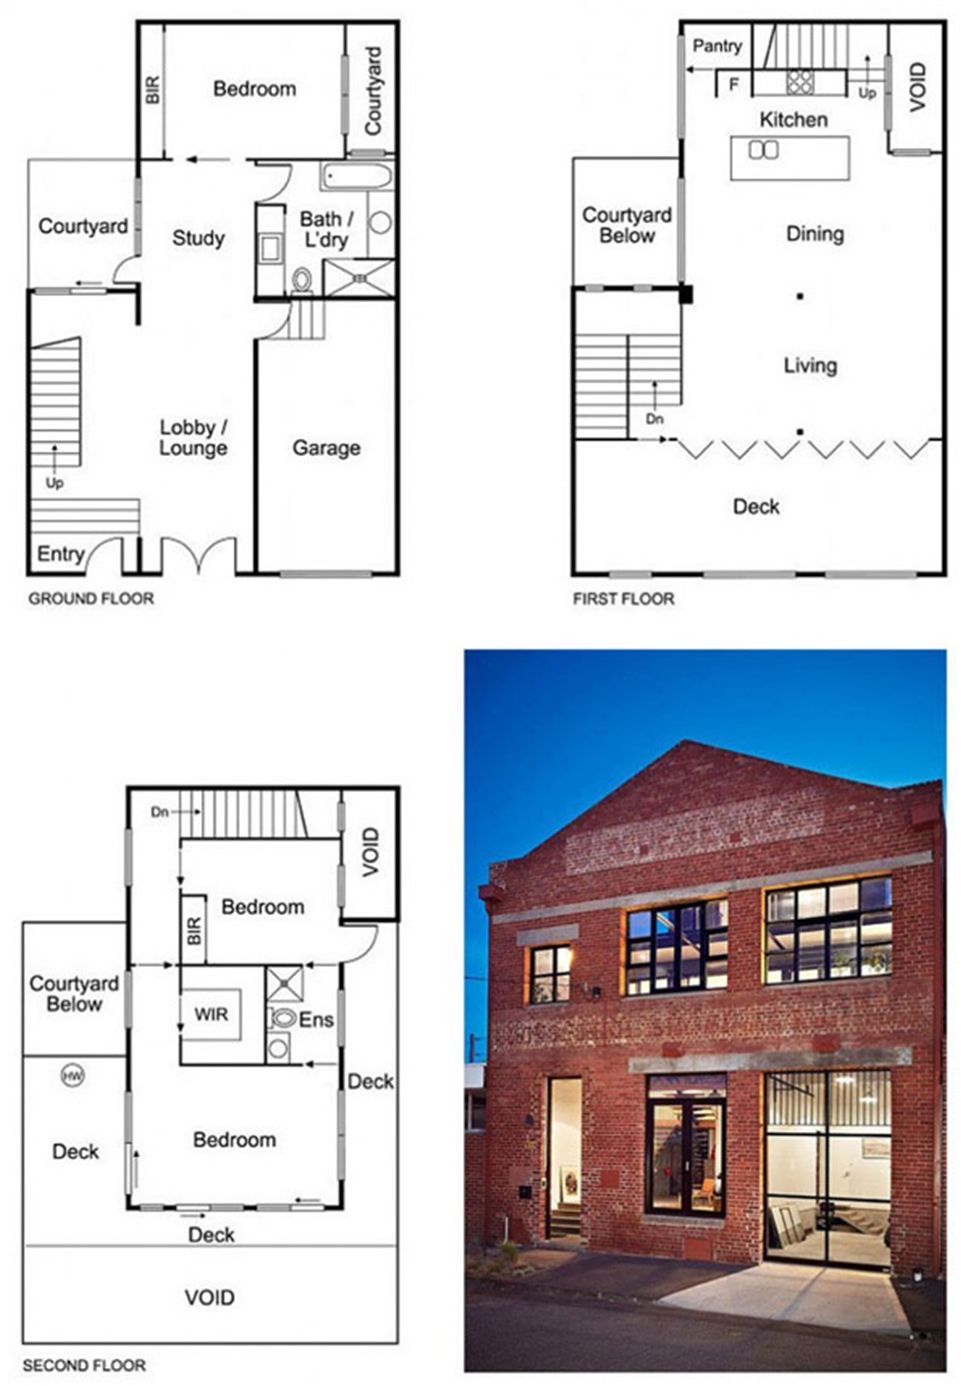 Home apartmentmost magnificent impressive warehouse conversion home apartmentmost magnificent impressive warehouse conversion architecture constructions drawing sketch blueprint project plans malvernweather Images